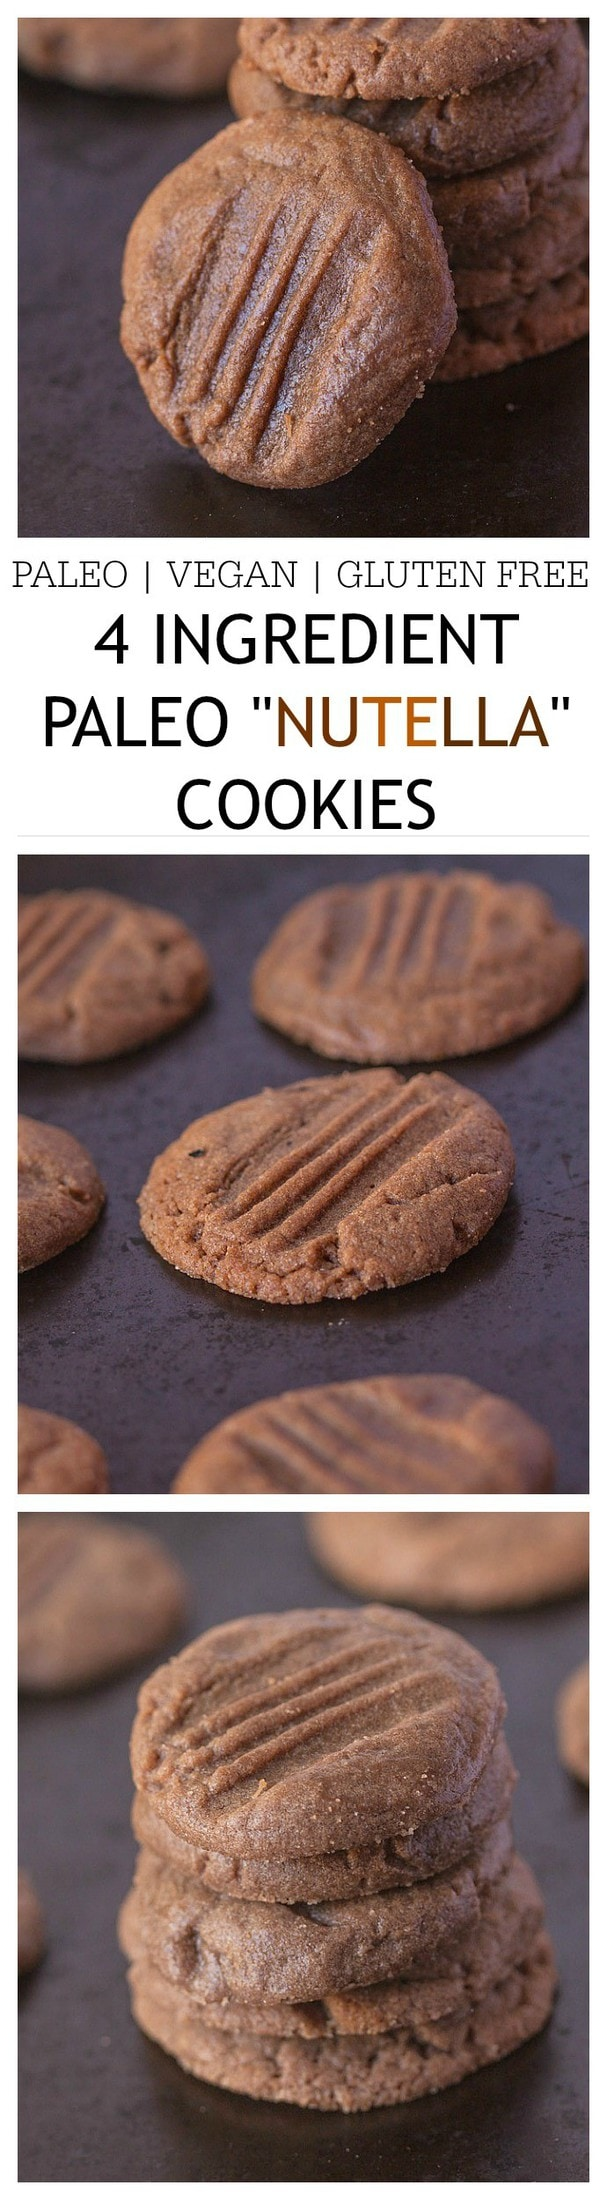 """Healthy 4 Ingredient Paleo """"Nutella"""" Cookies- Just FOUR ingredients are needed to make these paleo friendly 'nutella' cookies- 1 bowl, 10 minutes and you'll have chewy, delicious and healthy cookies ready! Paleo, gluten free and a vegan option too! @thebigmansworld - thebigmansworld.com"""